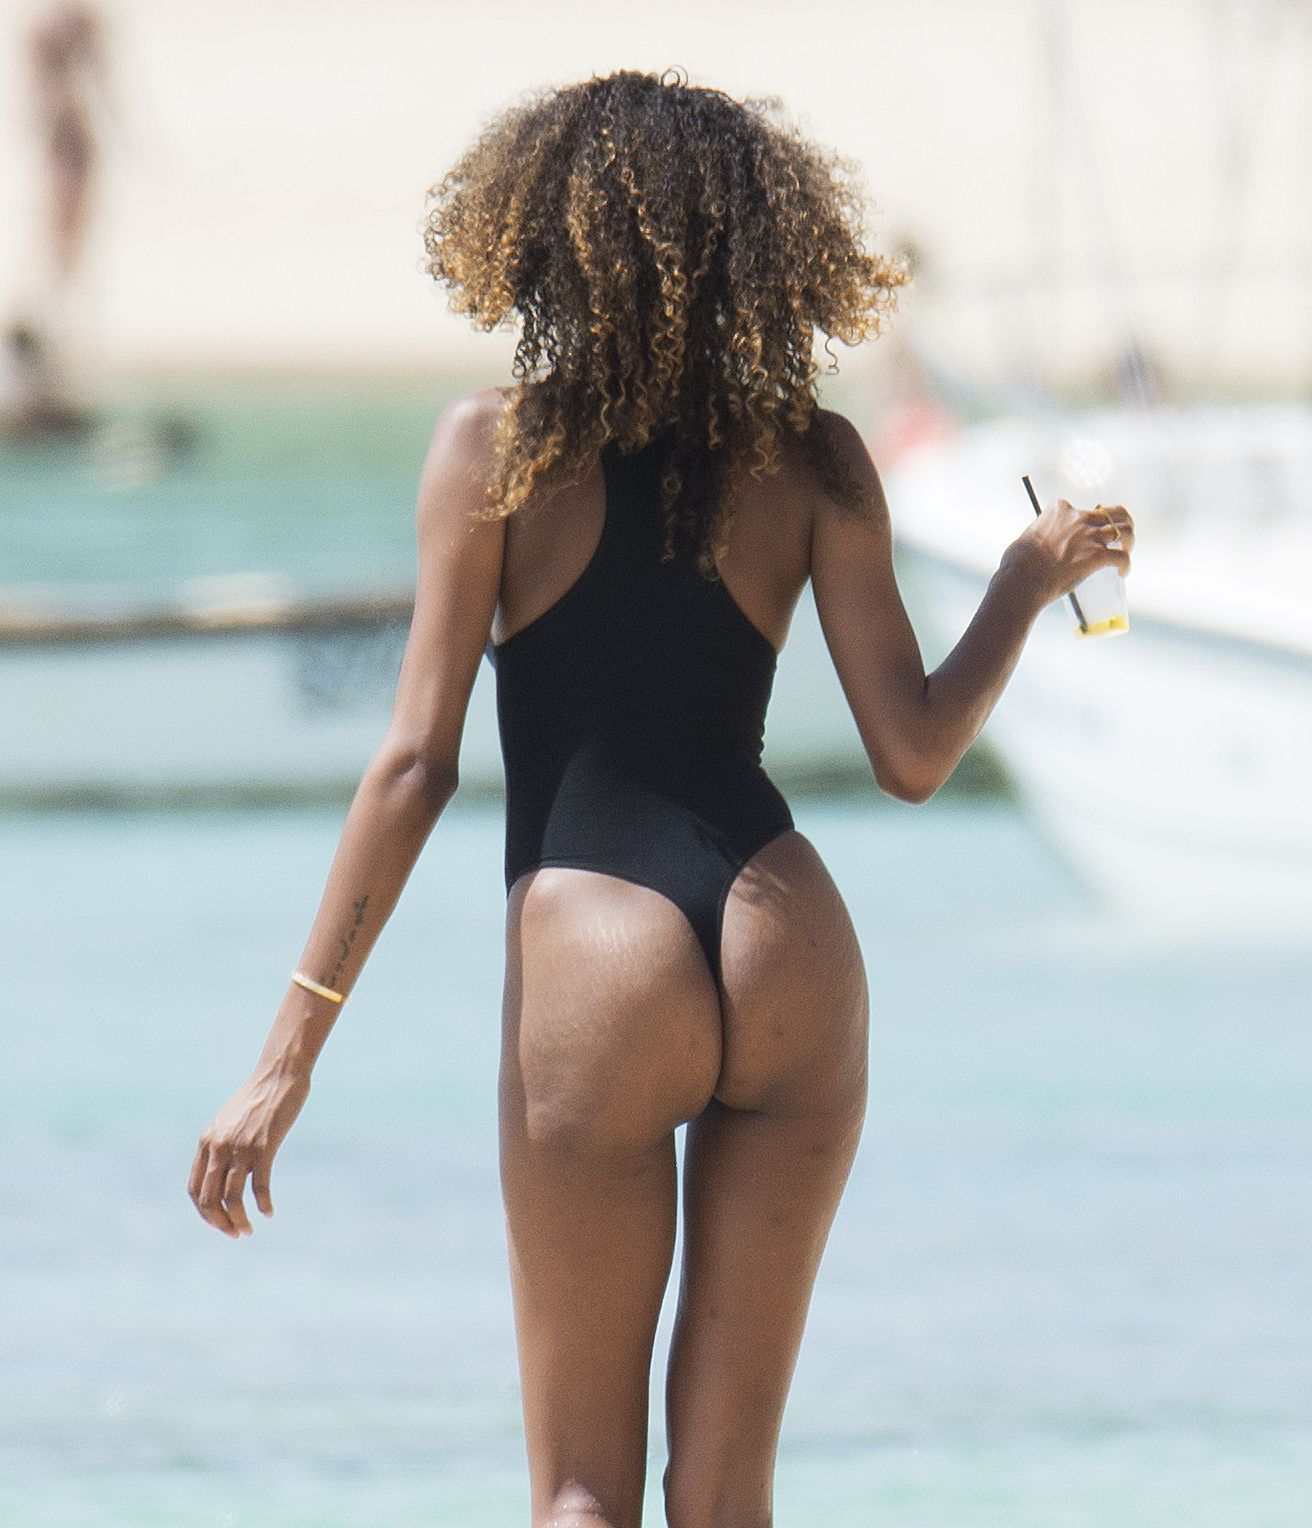 Jourdan-Dunn-in-a-Swimsuit-28